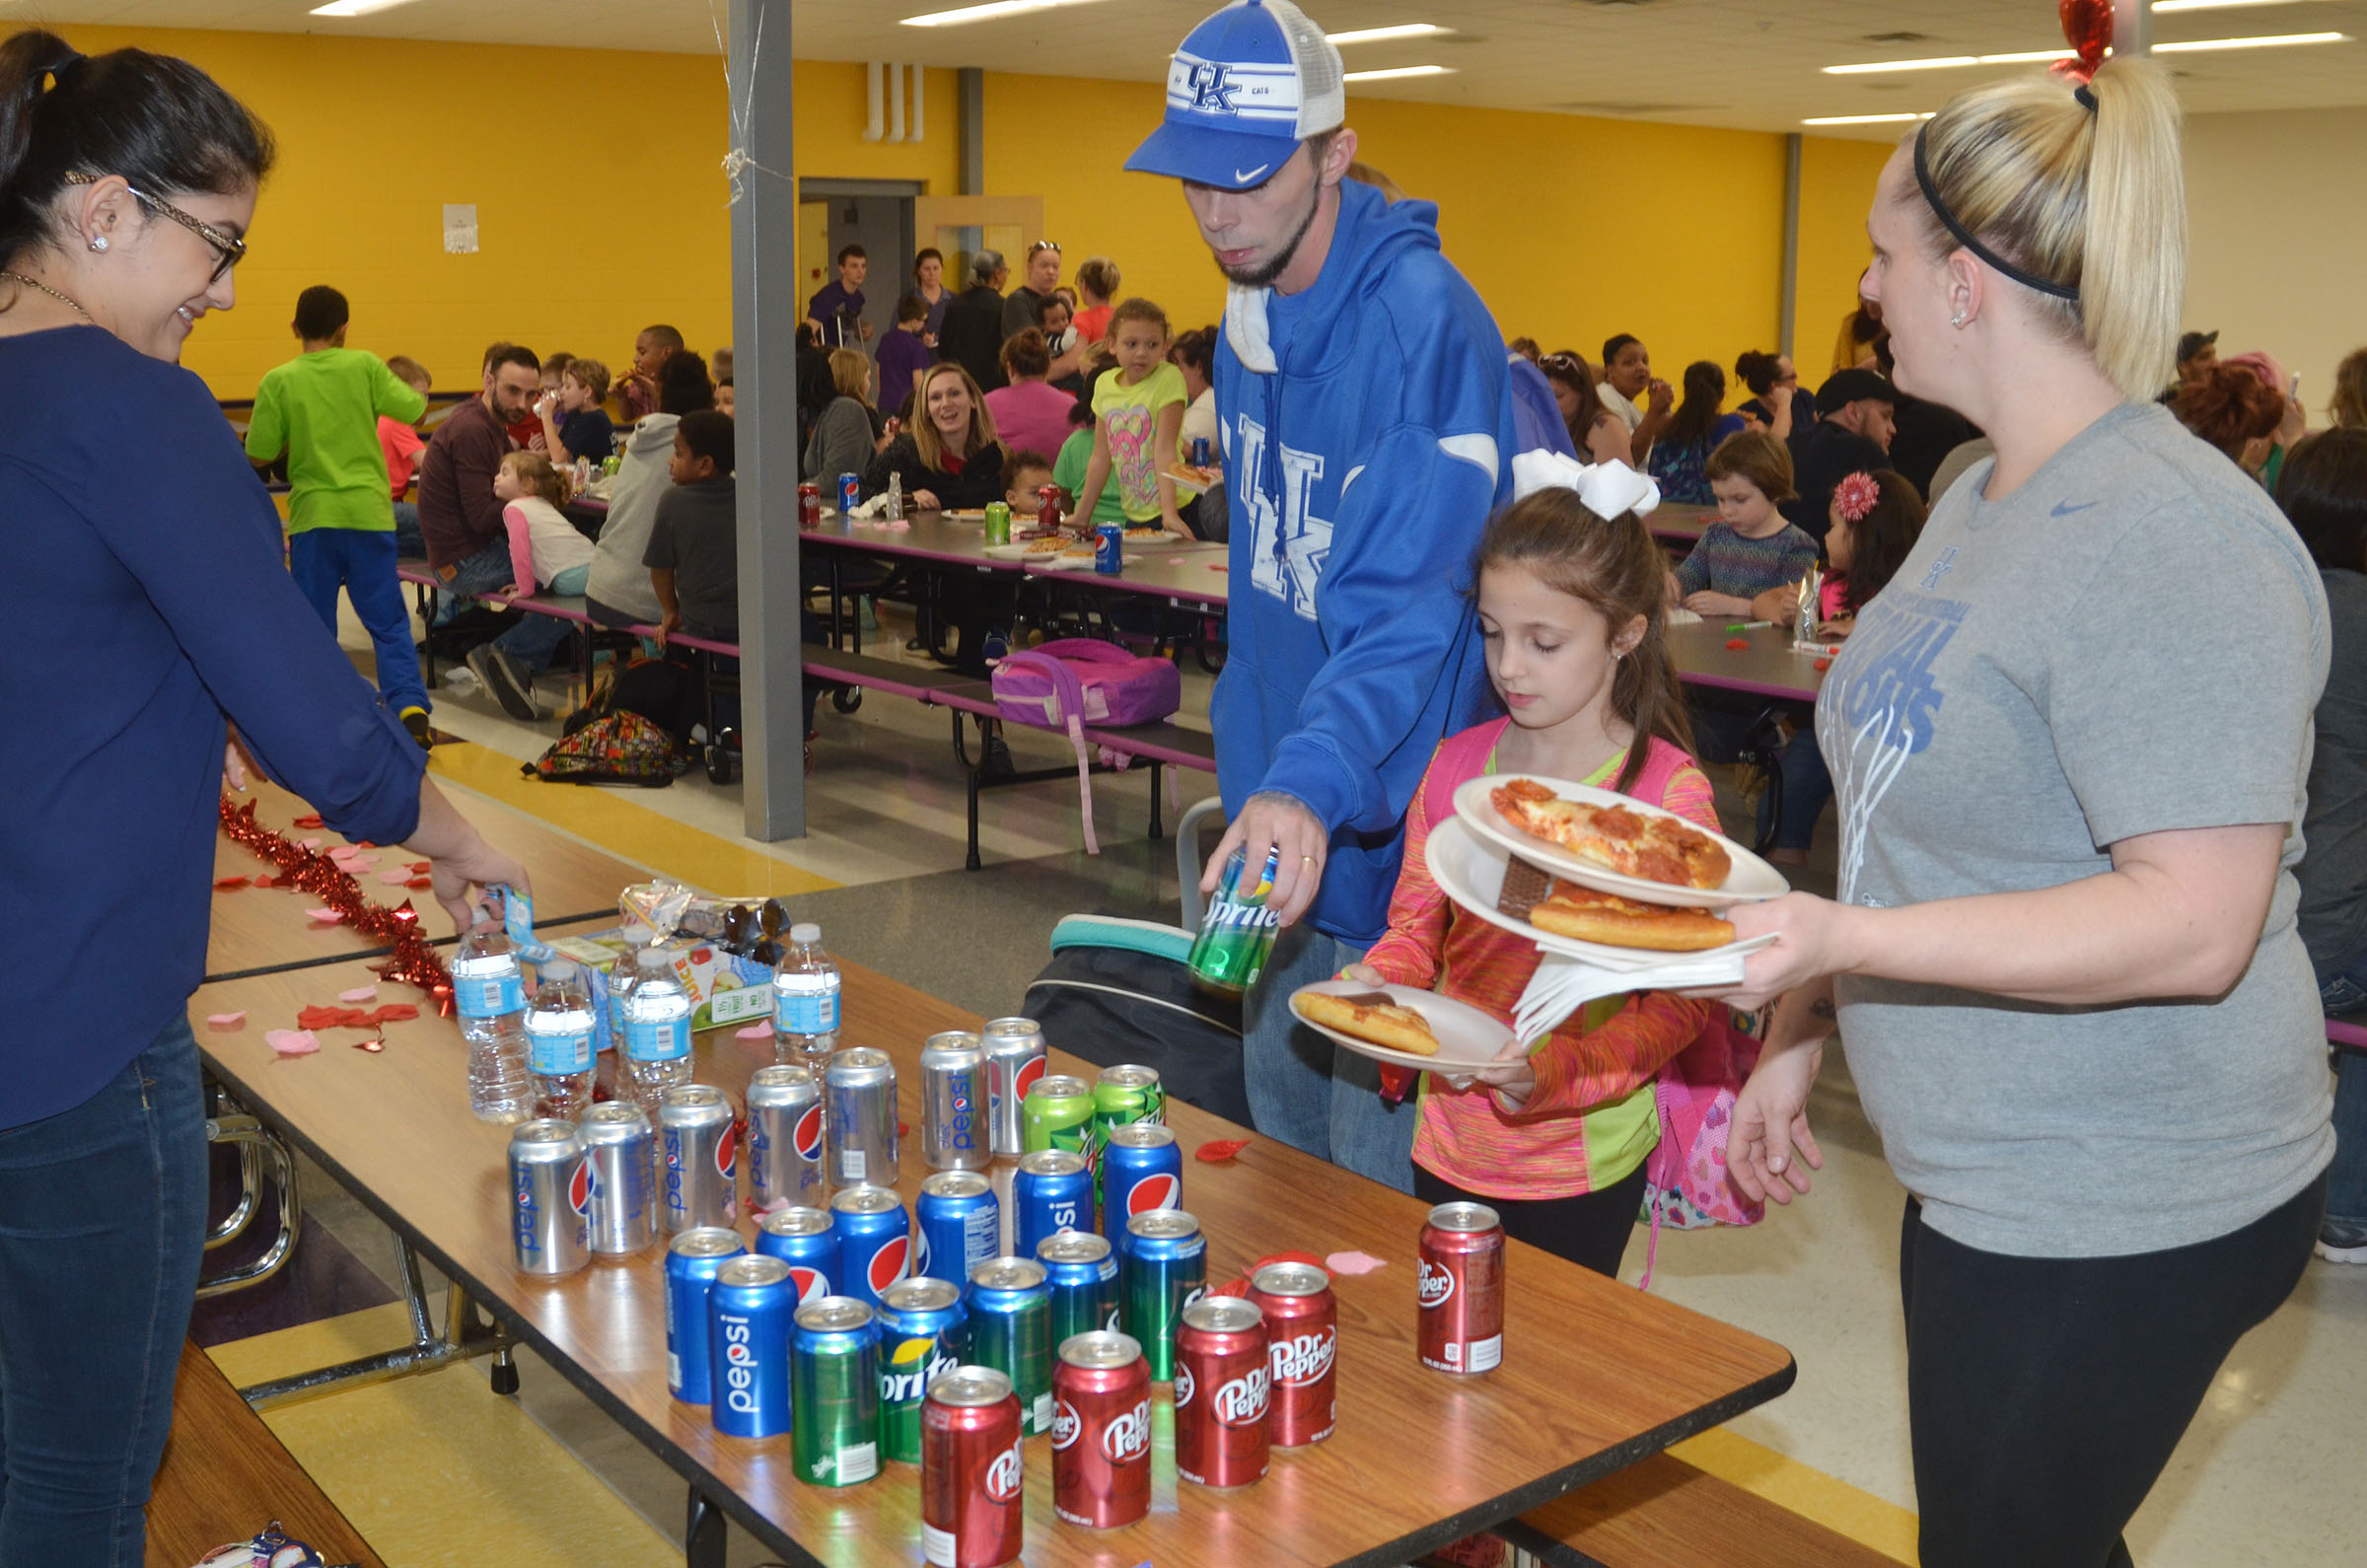 CES first-grader Lillian Martin and her parents, Danielle and Richard, are served pizza and soft drinks.